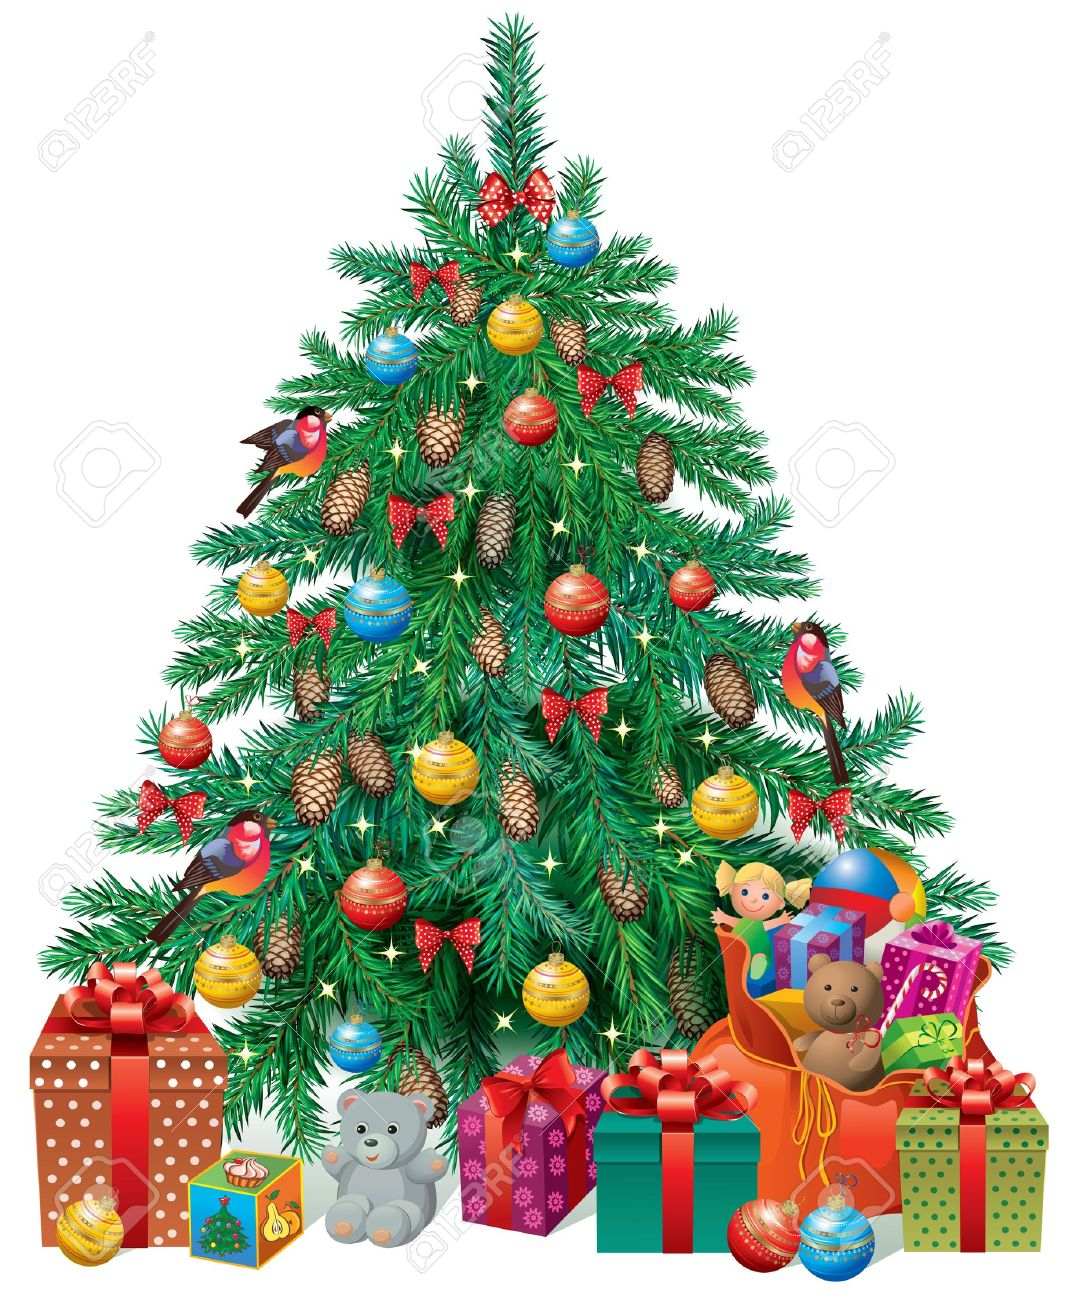 Real christmas trees with presents - Spruced Christmas Tree With Gifts And Toys Contains Transparent Objects Stock Vector 15337809